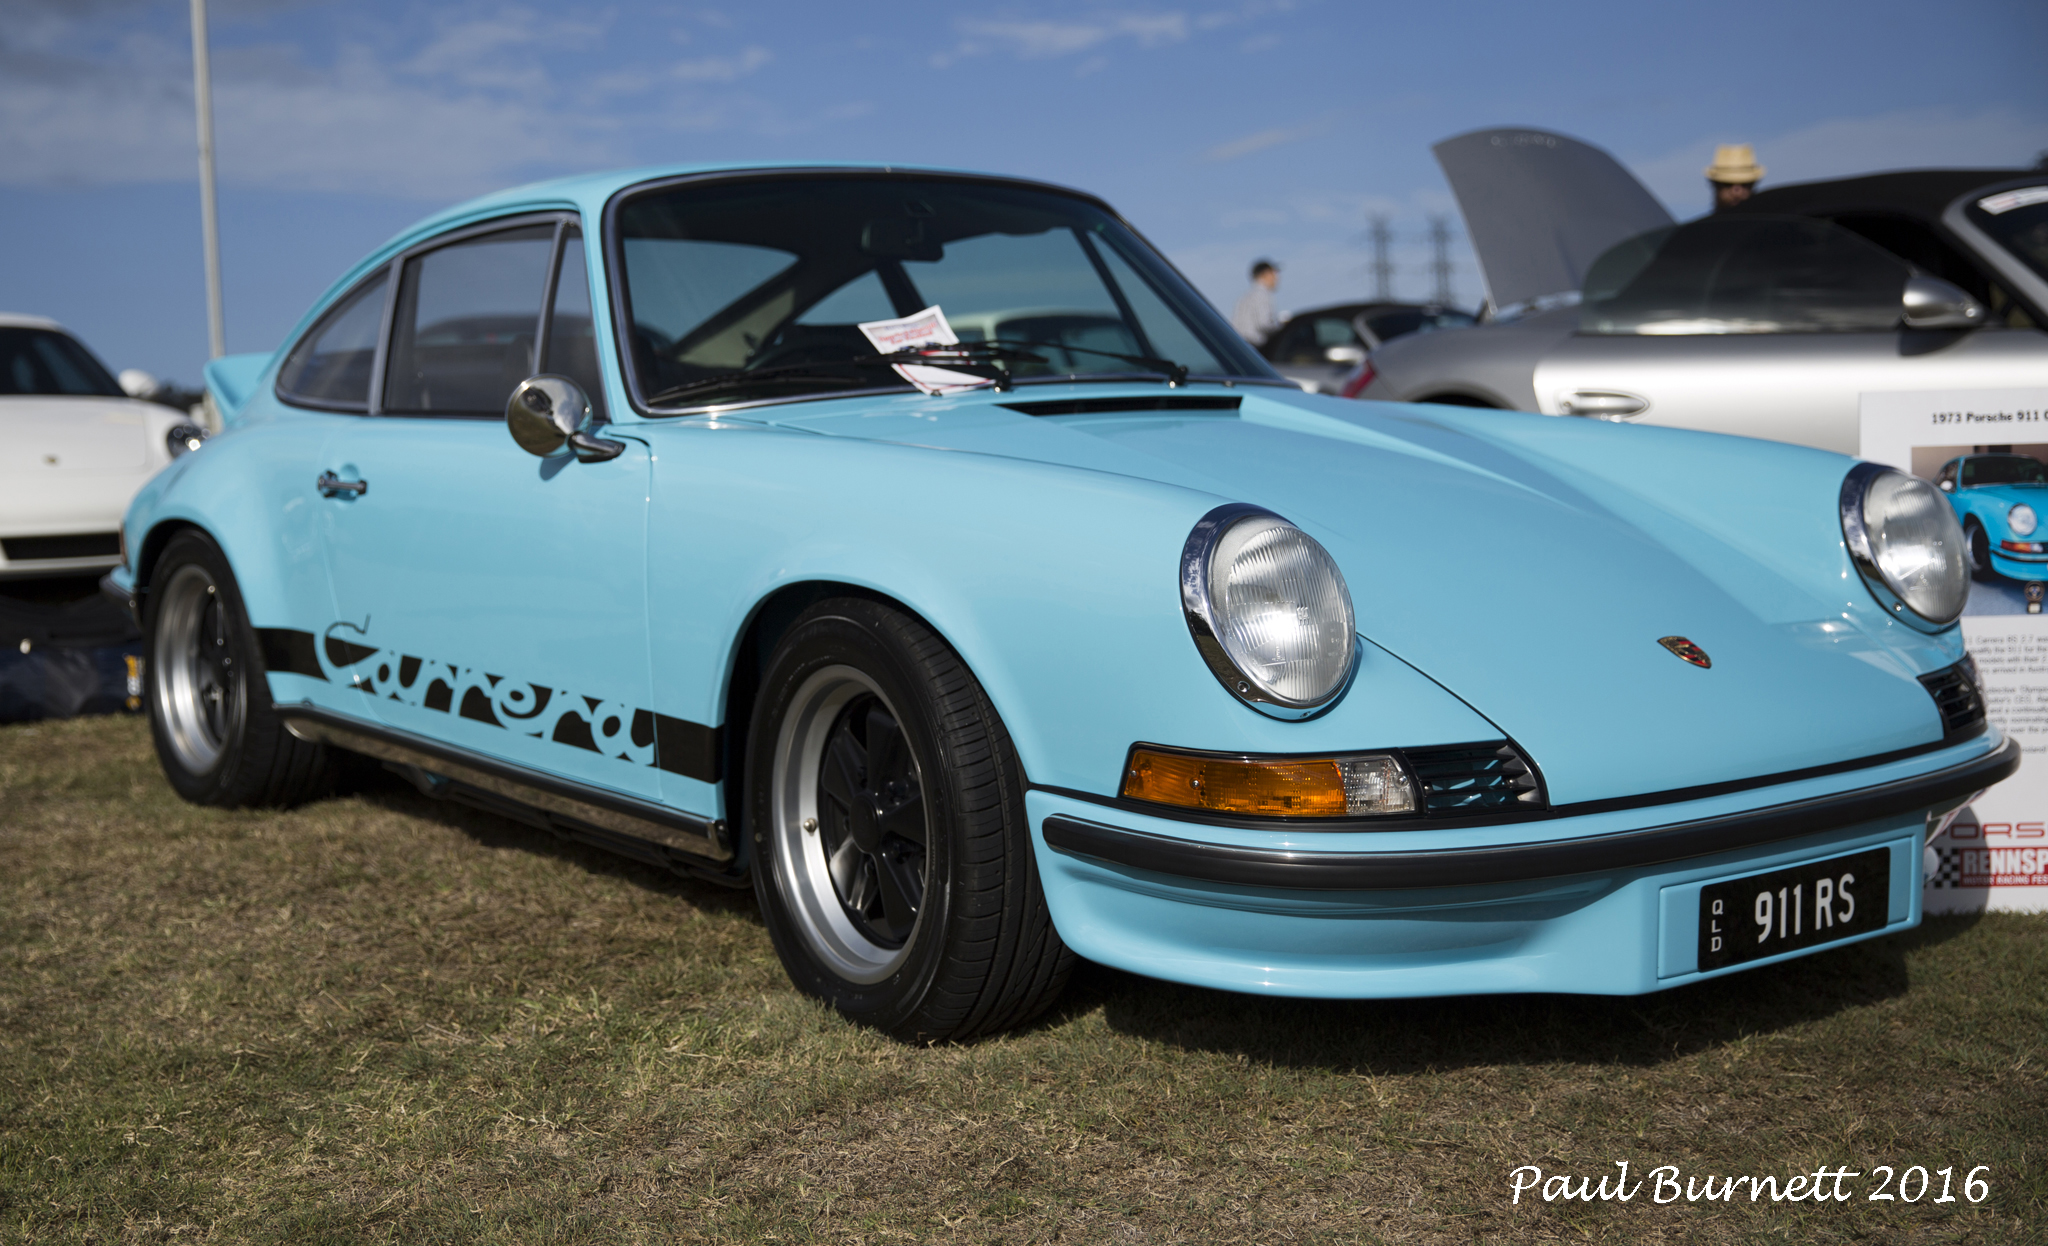 Porsche Carrera 2.7 RS - probably the most valuable at the show